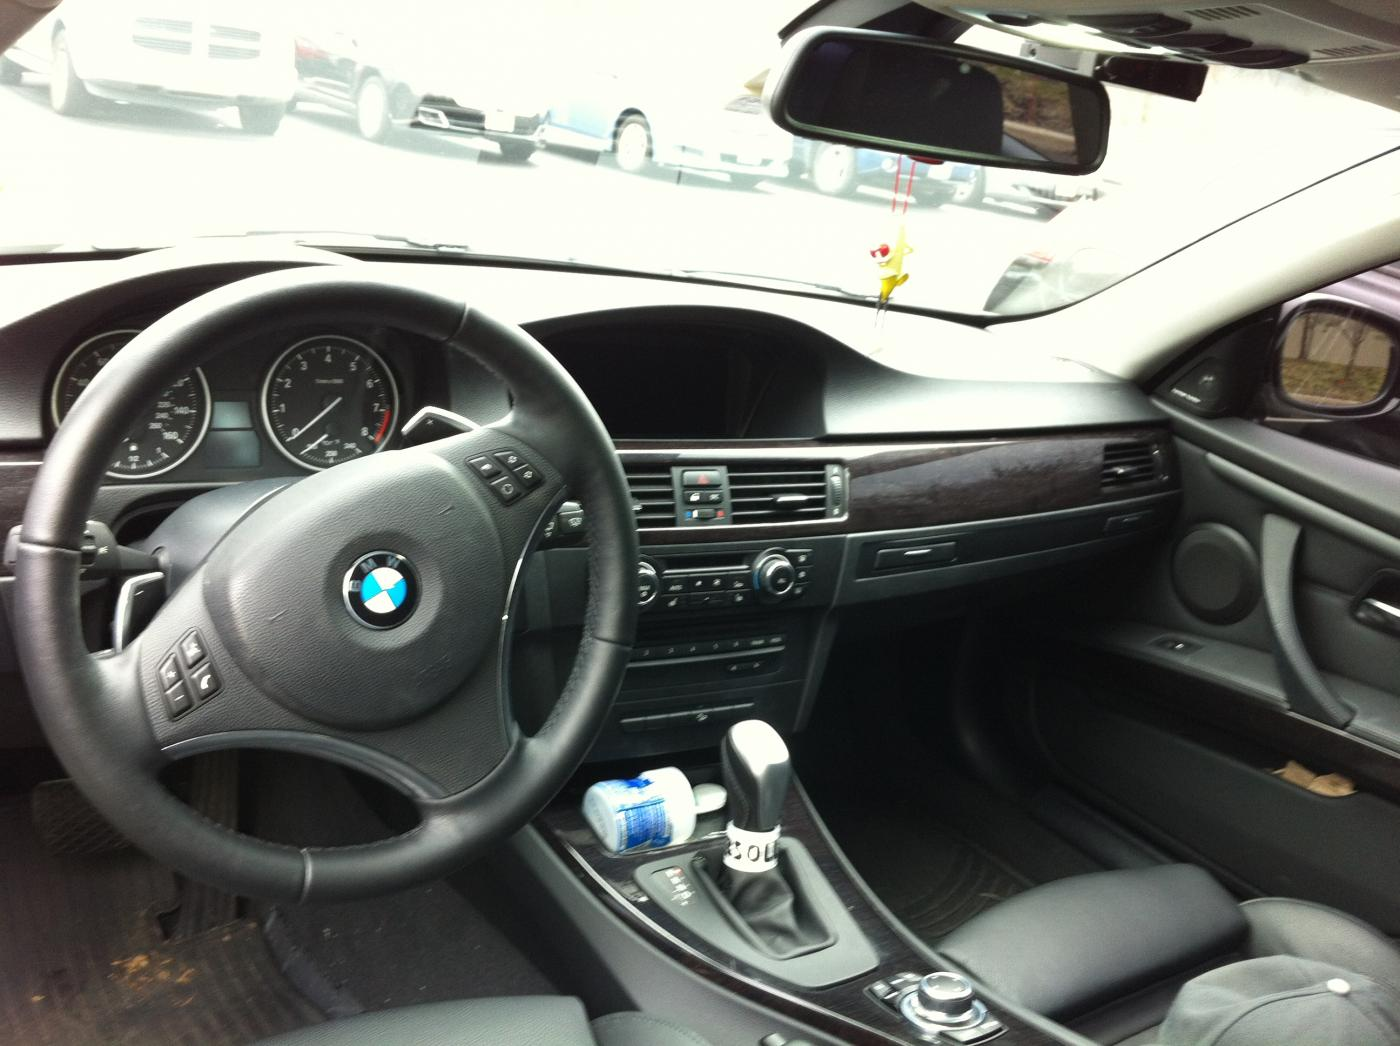 LEASE TAKEOVER BMW Xi Coupe W Mods M PLEASE - 2011 bmw 335xi